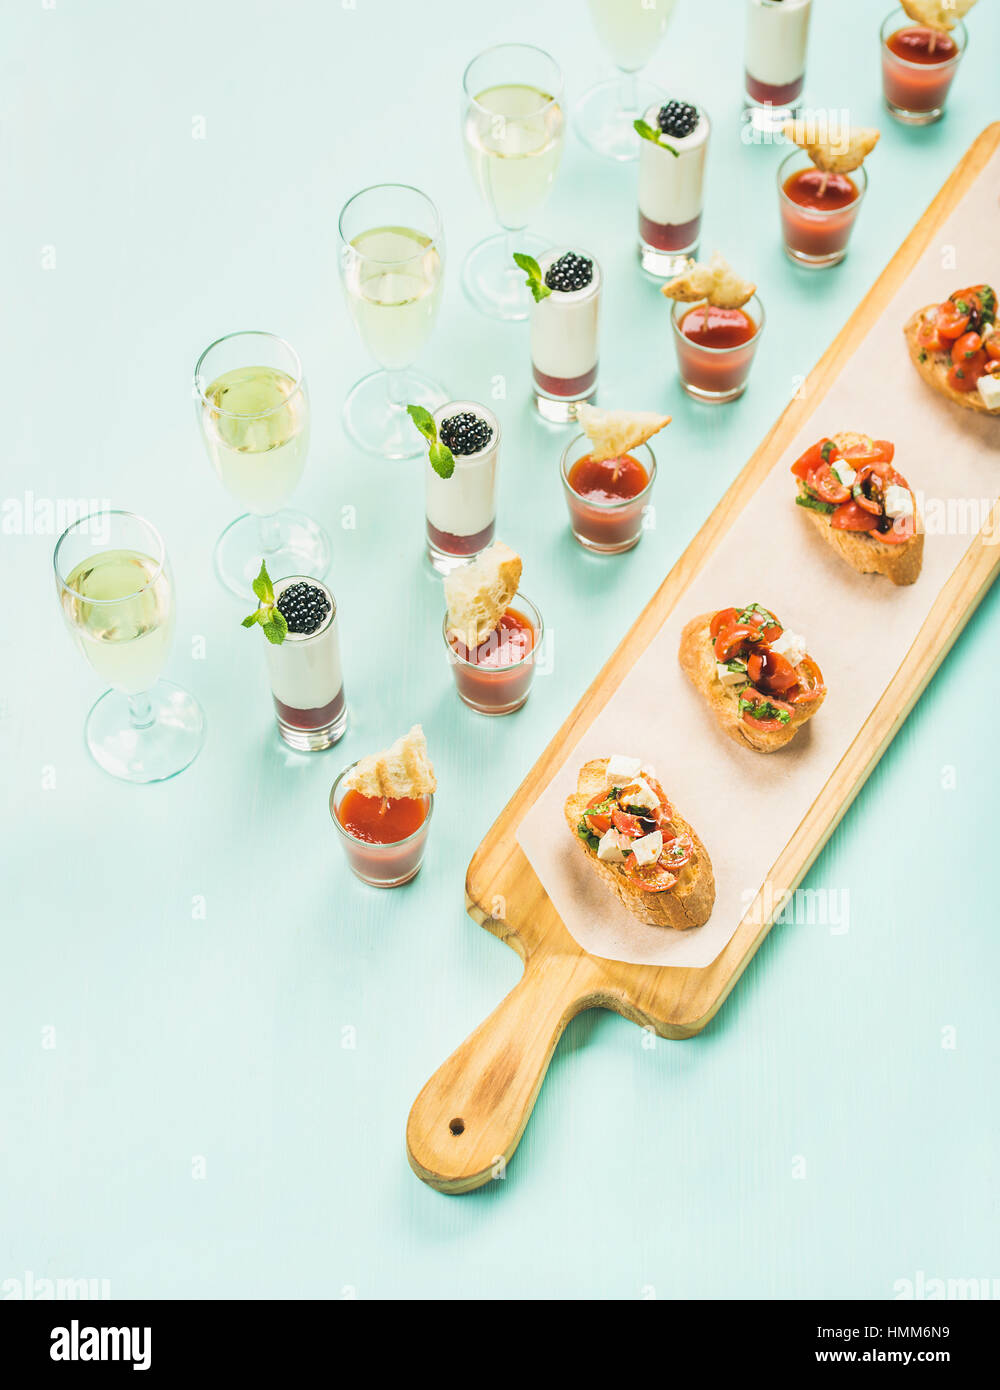 Snacks, brushettas, gazpacho shots, desserts, champagne over pastel blue background - Stock Image